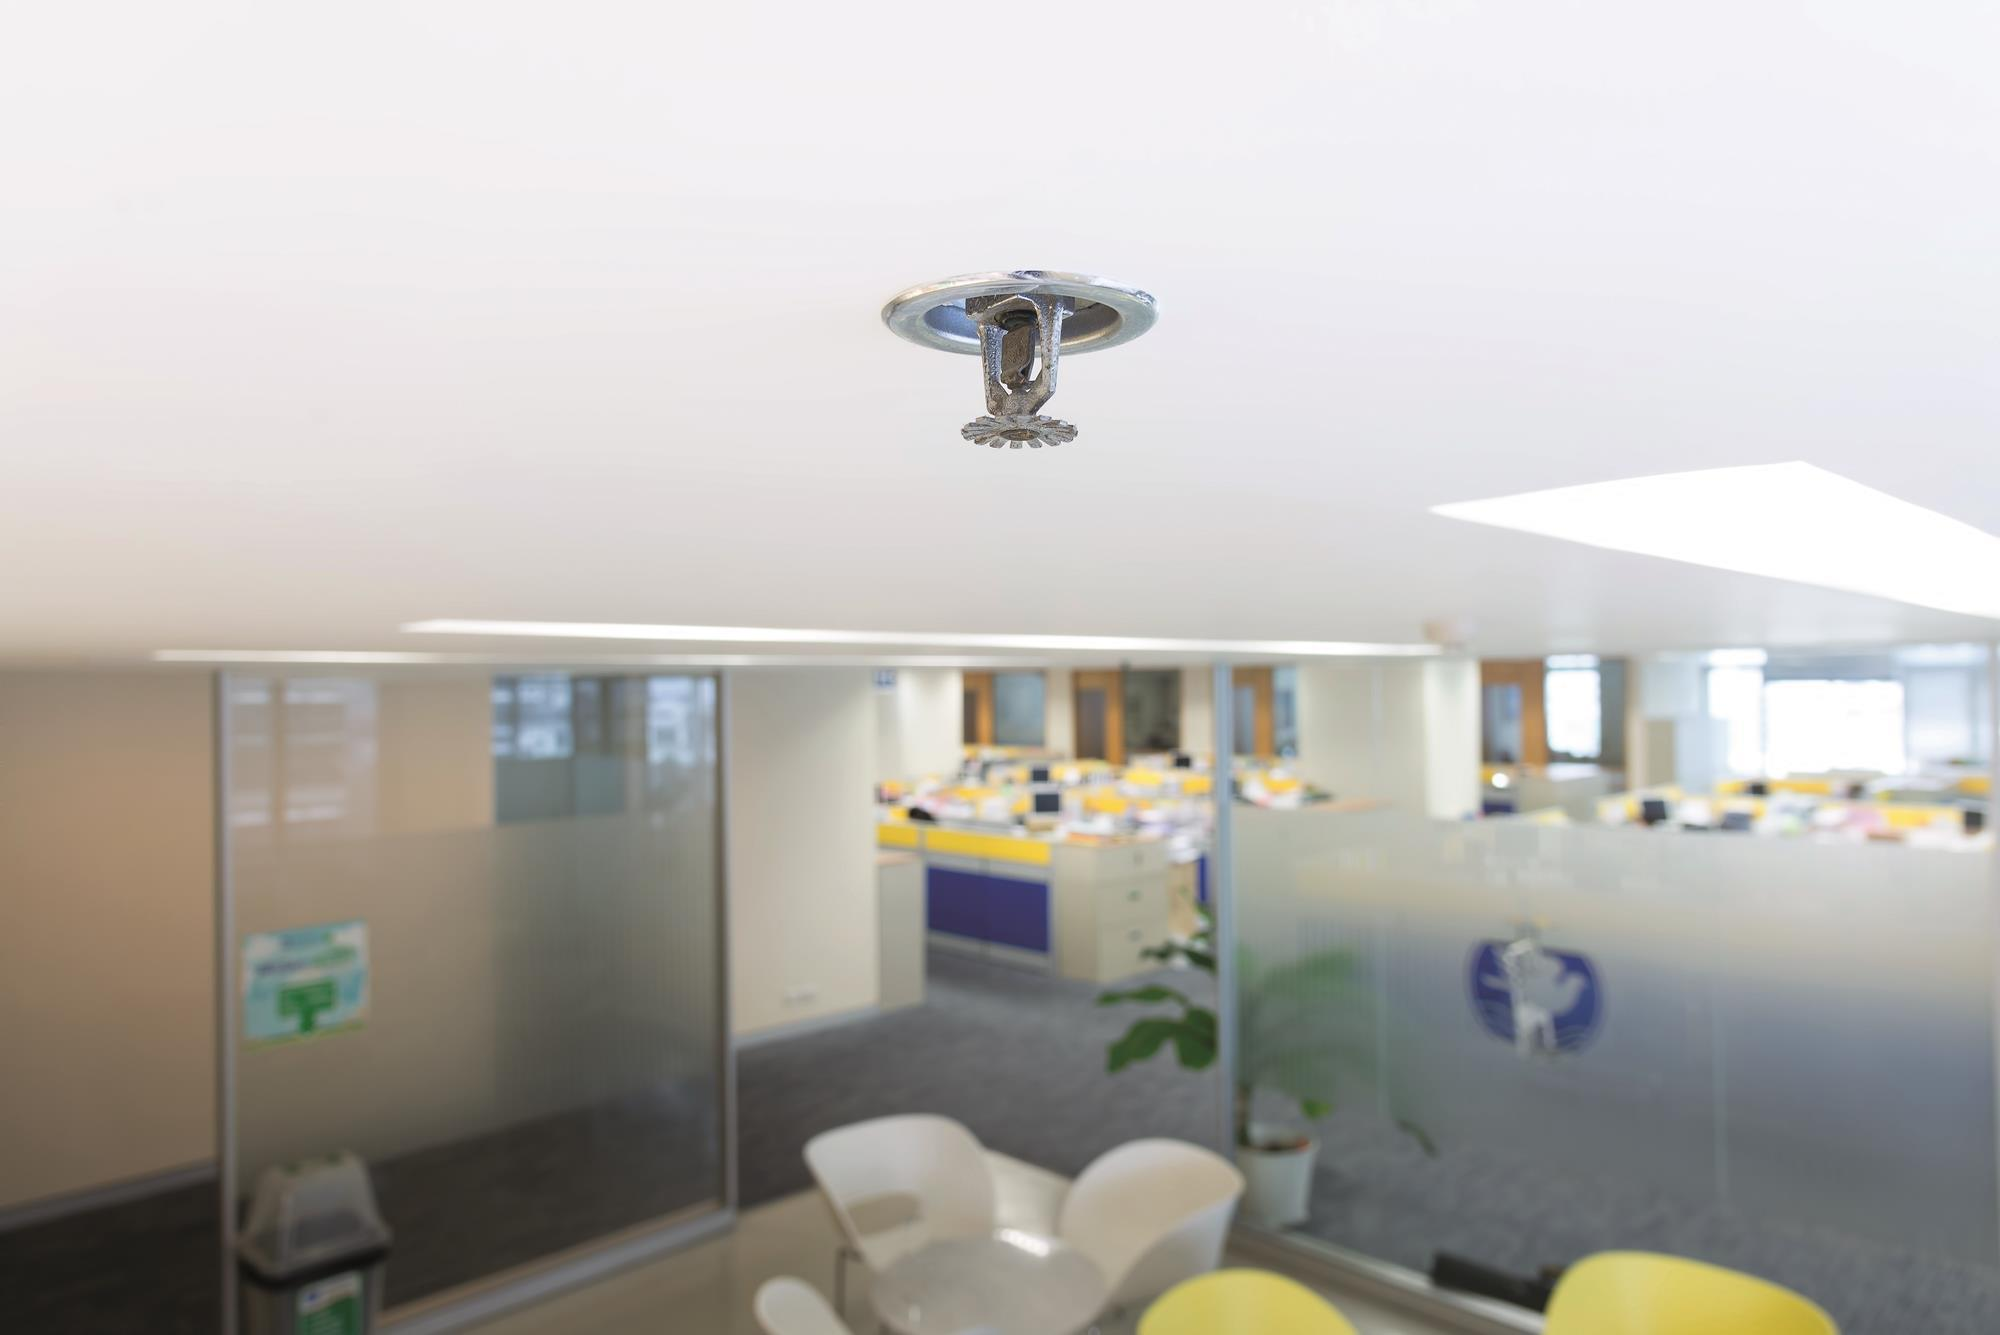 Cpd 24 Automatic Sprinkler Systems And Building